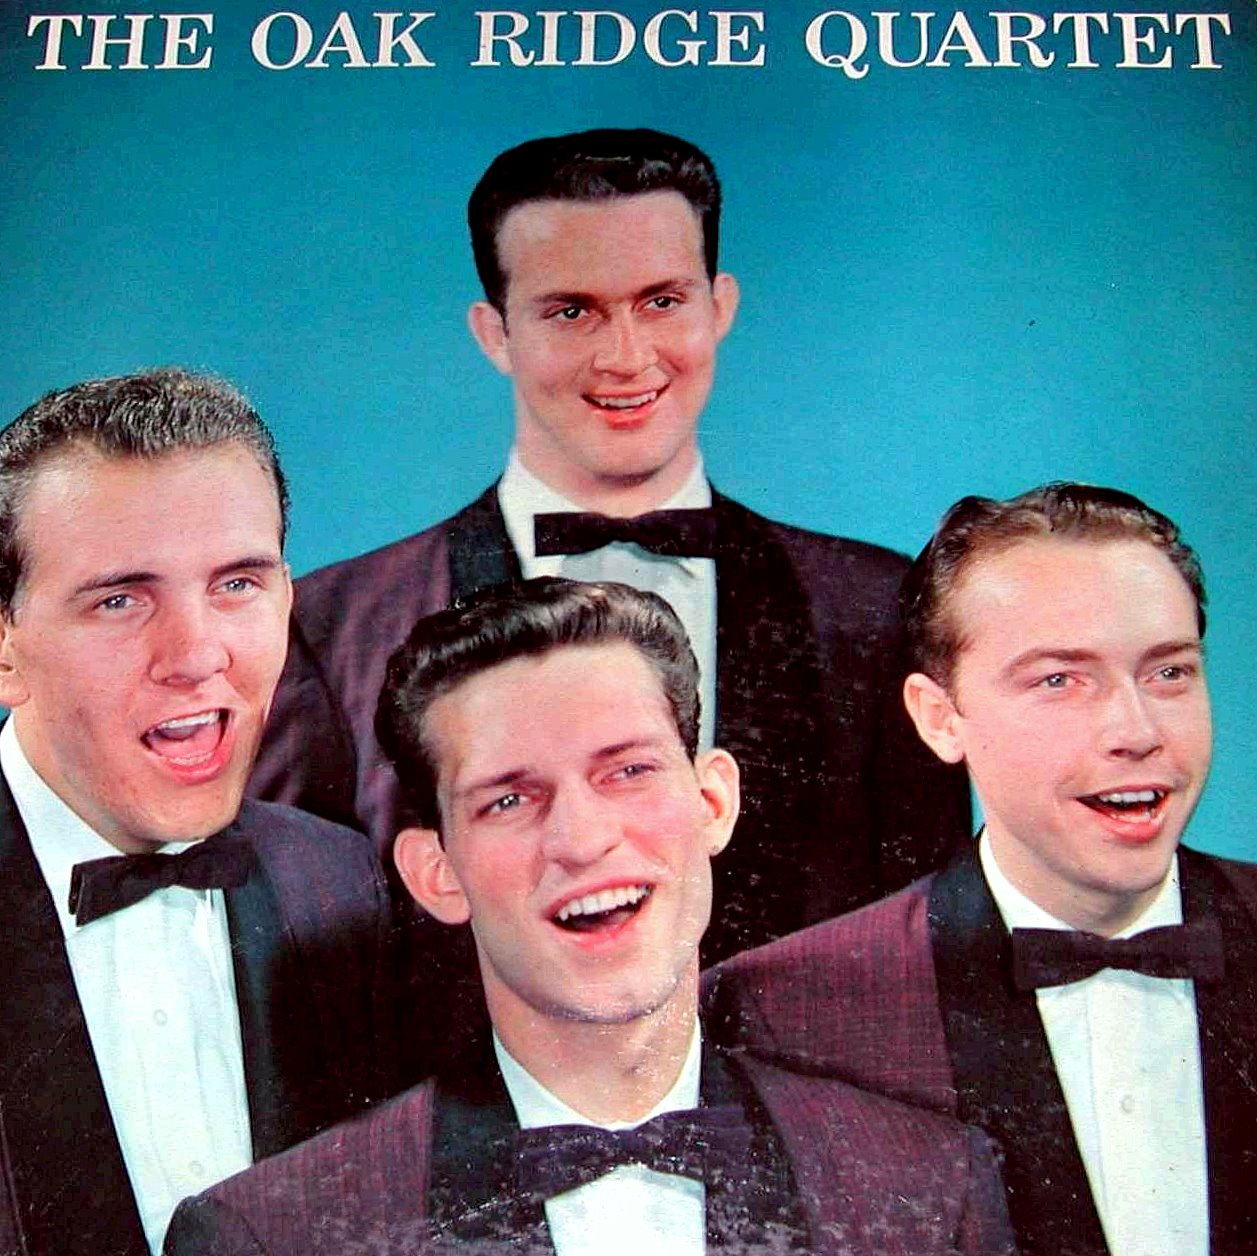 Oak Ridge Quartet